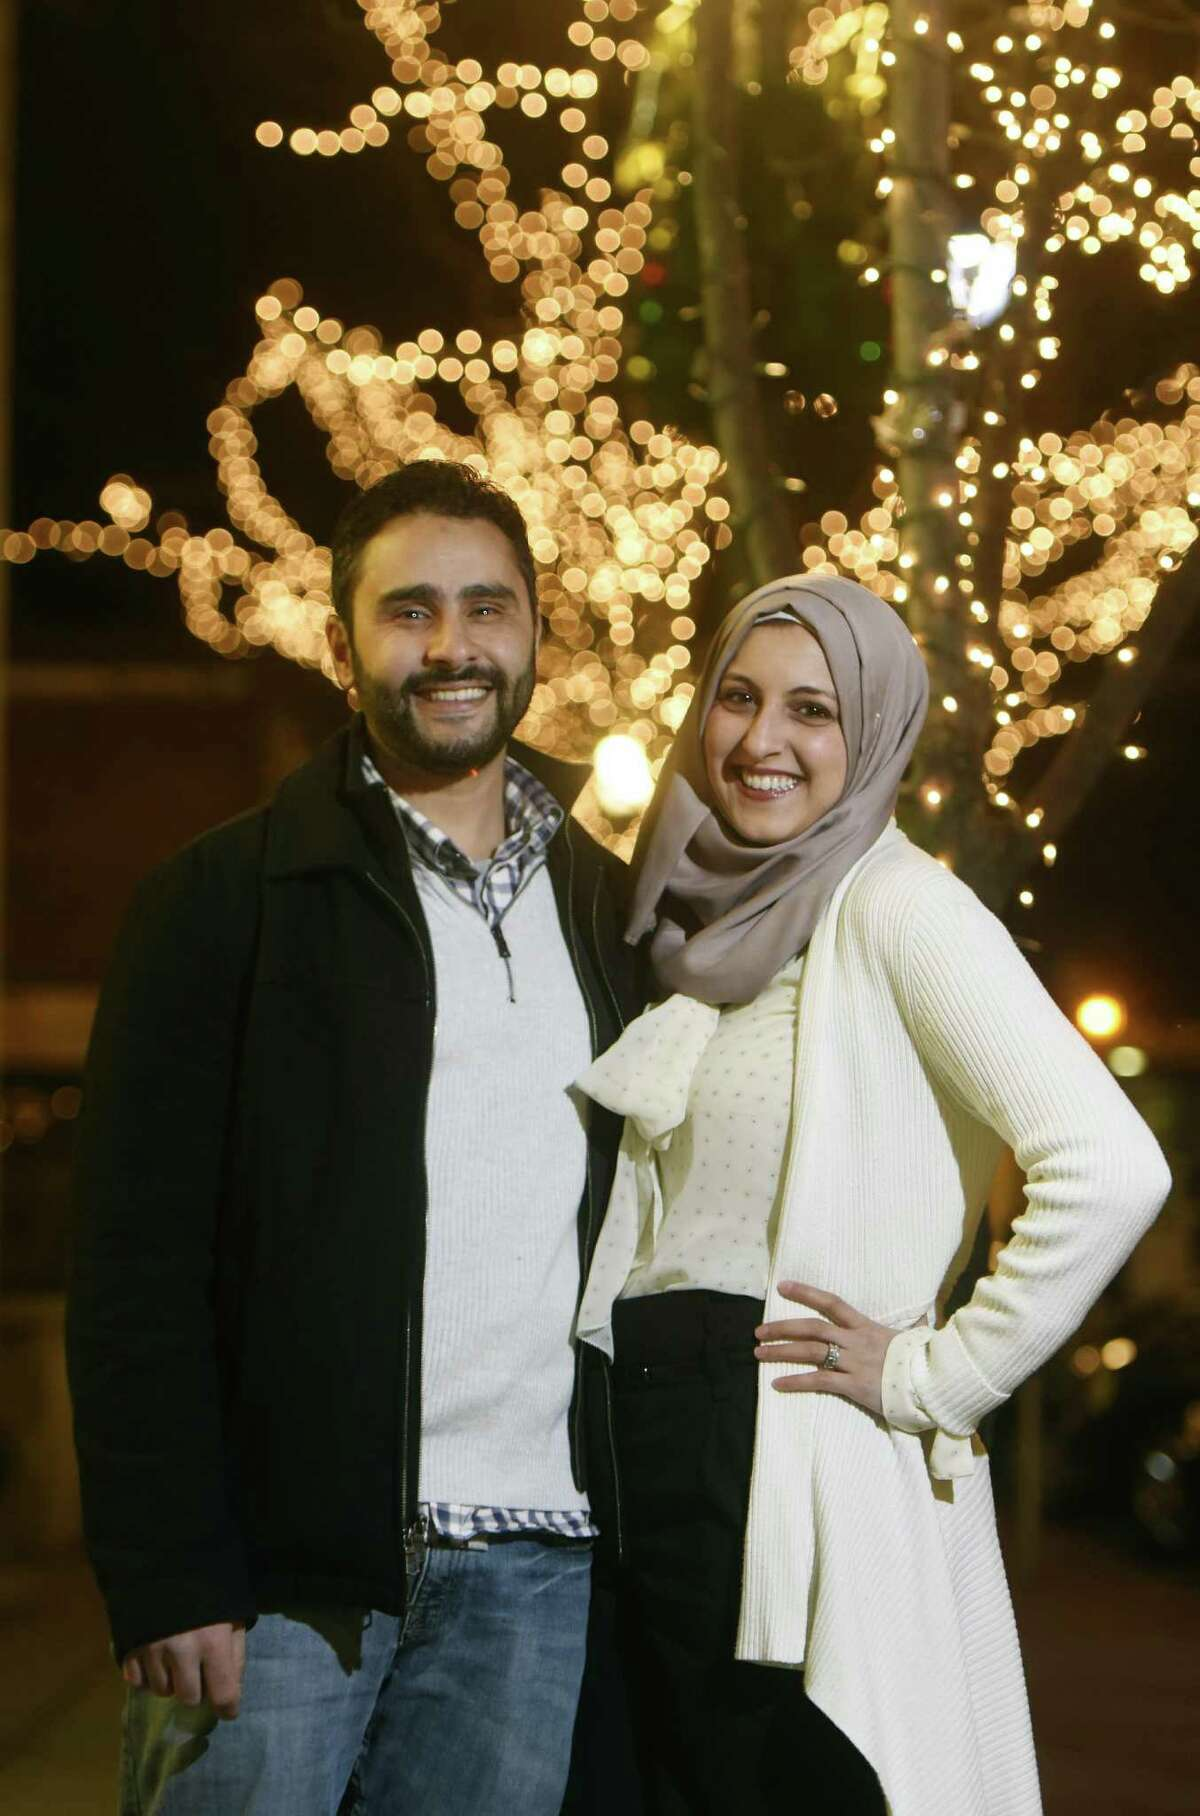 Stamford residents Shaimah Hamdan and her husband Fadi El-Ghussein pose near their home in downtown Stamford, Conn. Thursday, Jan. 19, 2017. The young couple has been living in Stamford for two years, moving to the area from New Hampshire for Fadi's job.